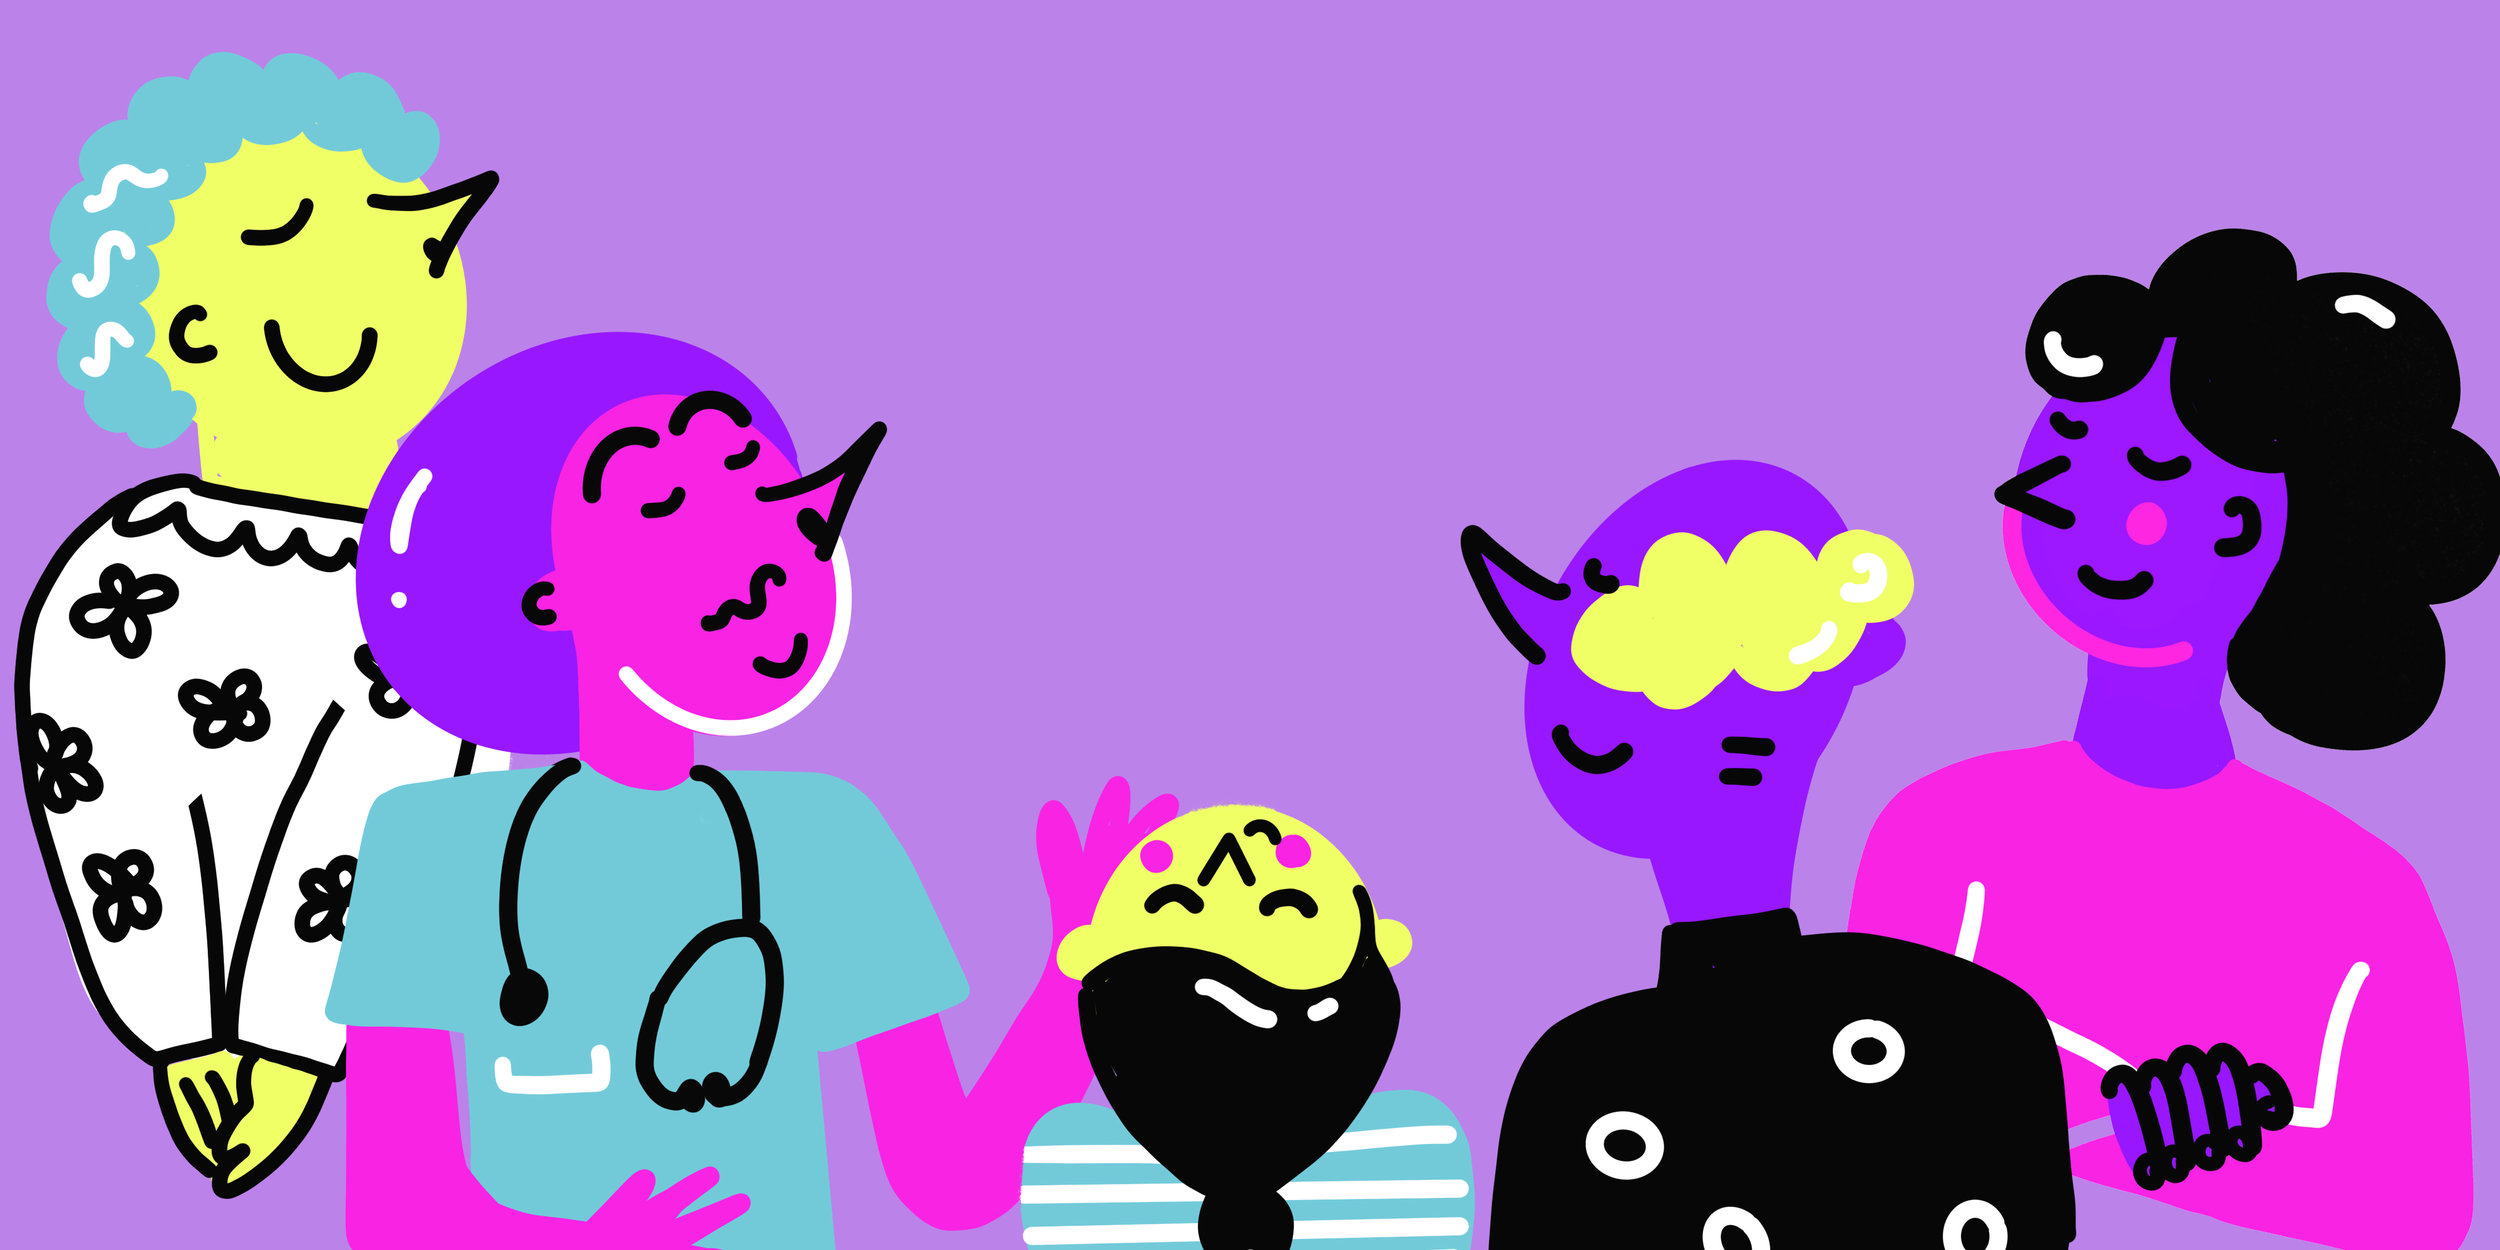 Five hand drawn characters smelling the air on a purple background